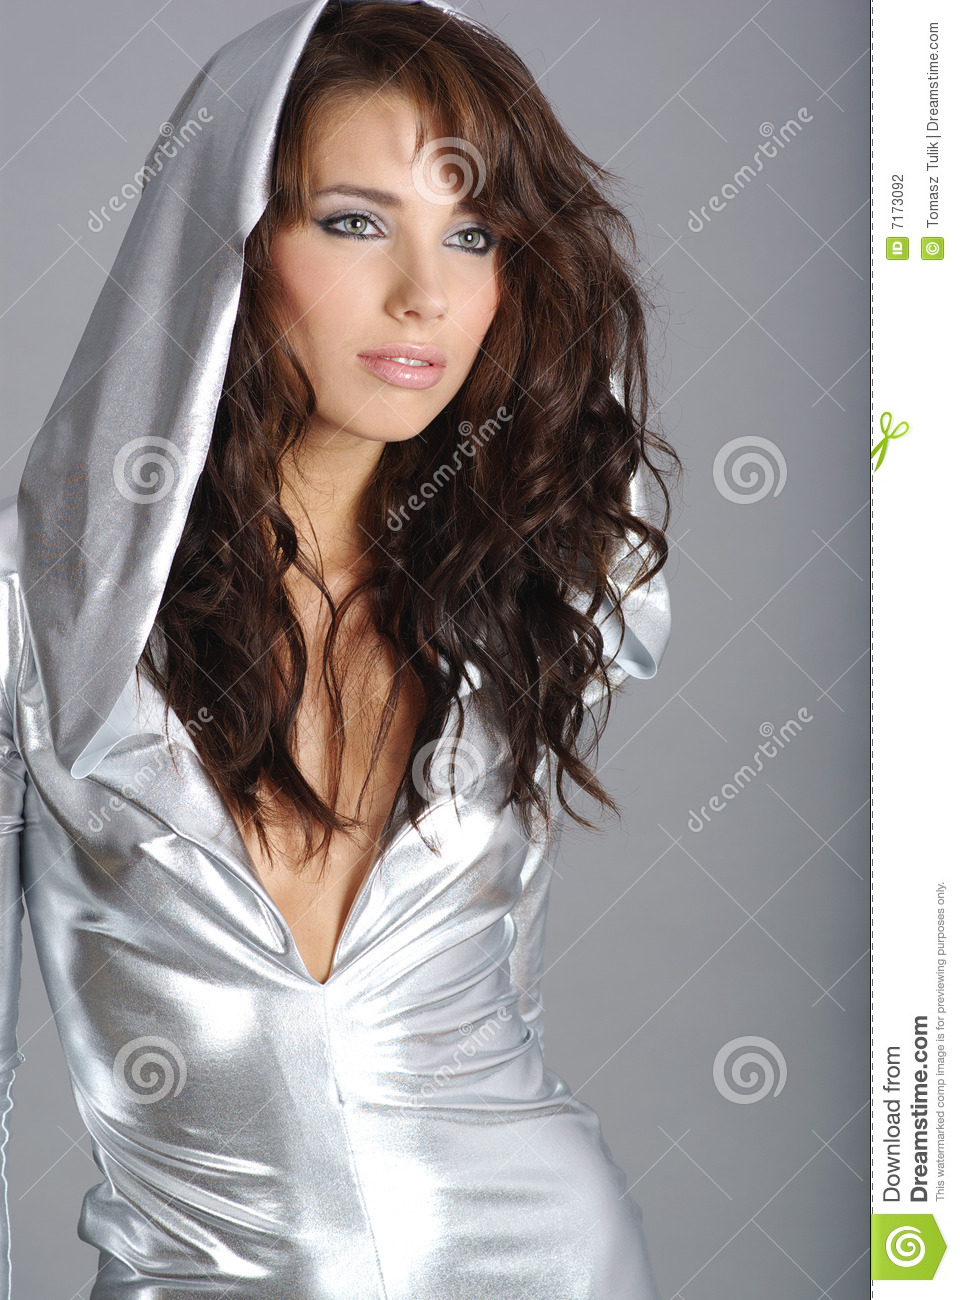 Glamour And Fashion Girl Stock Photography Image 7173092